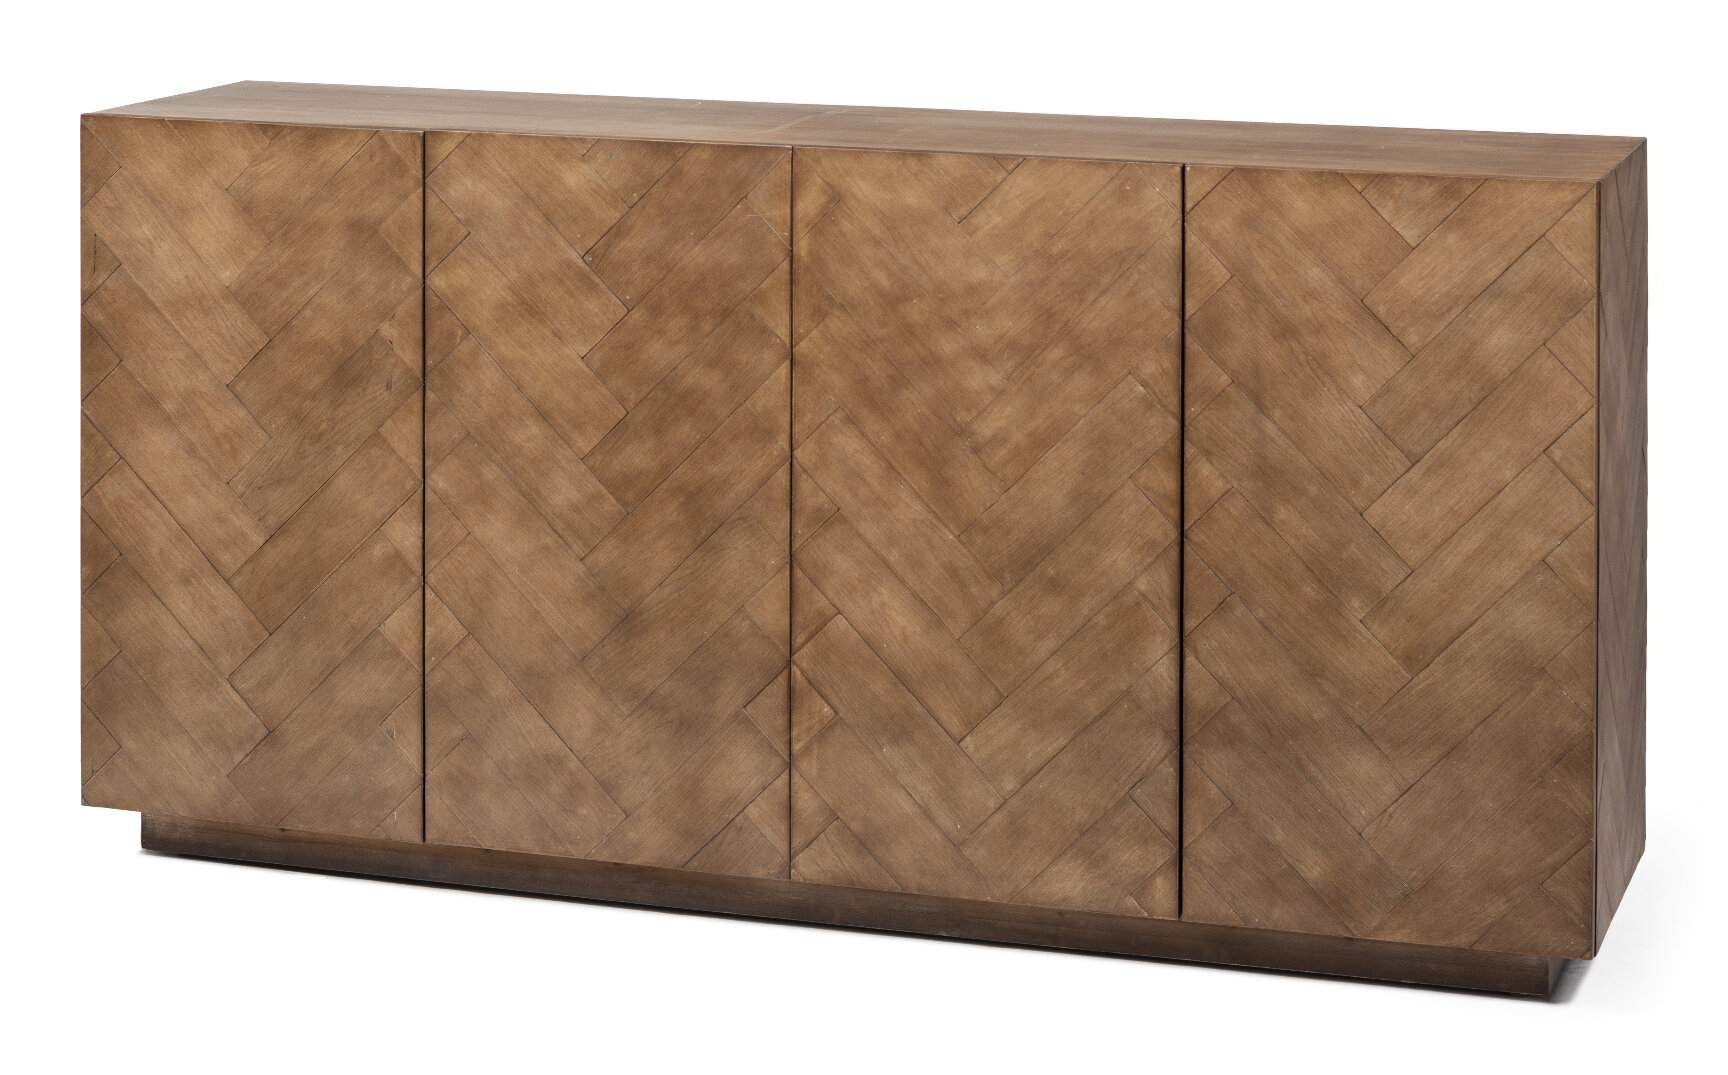 Shatley Sideboard Inside Keiko Modern Bookmatch Sideboards (View 12 of 30)